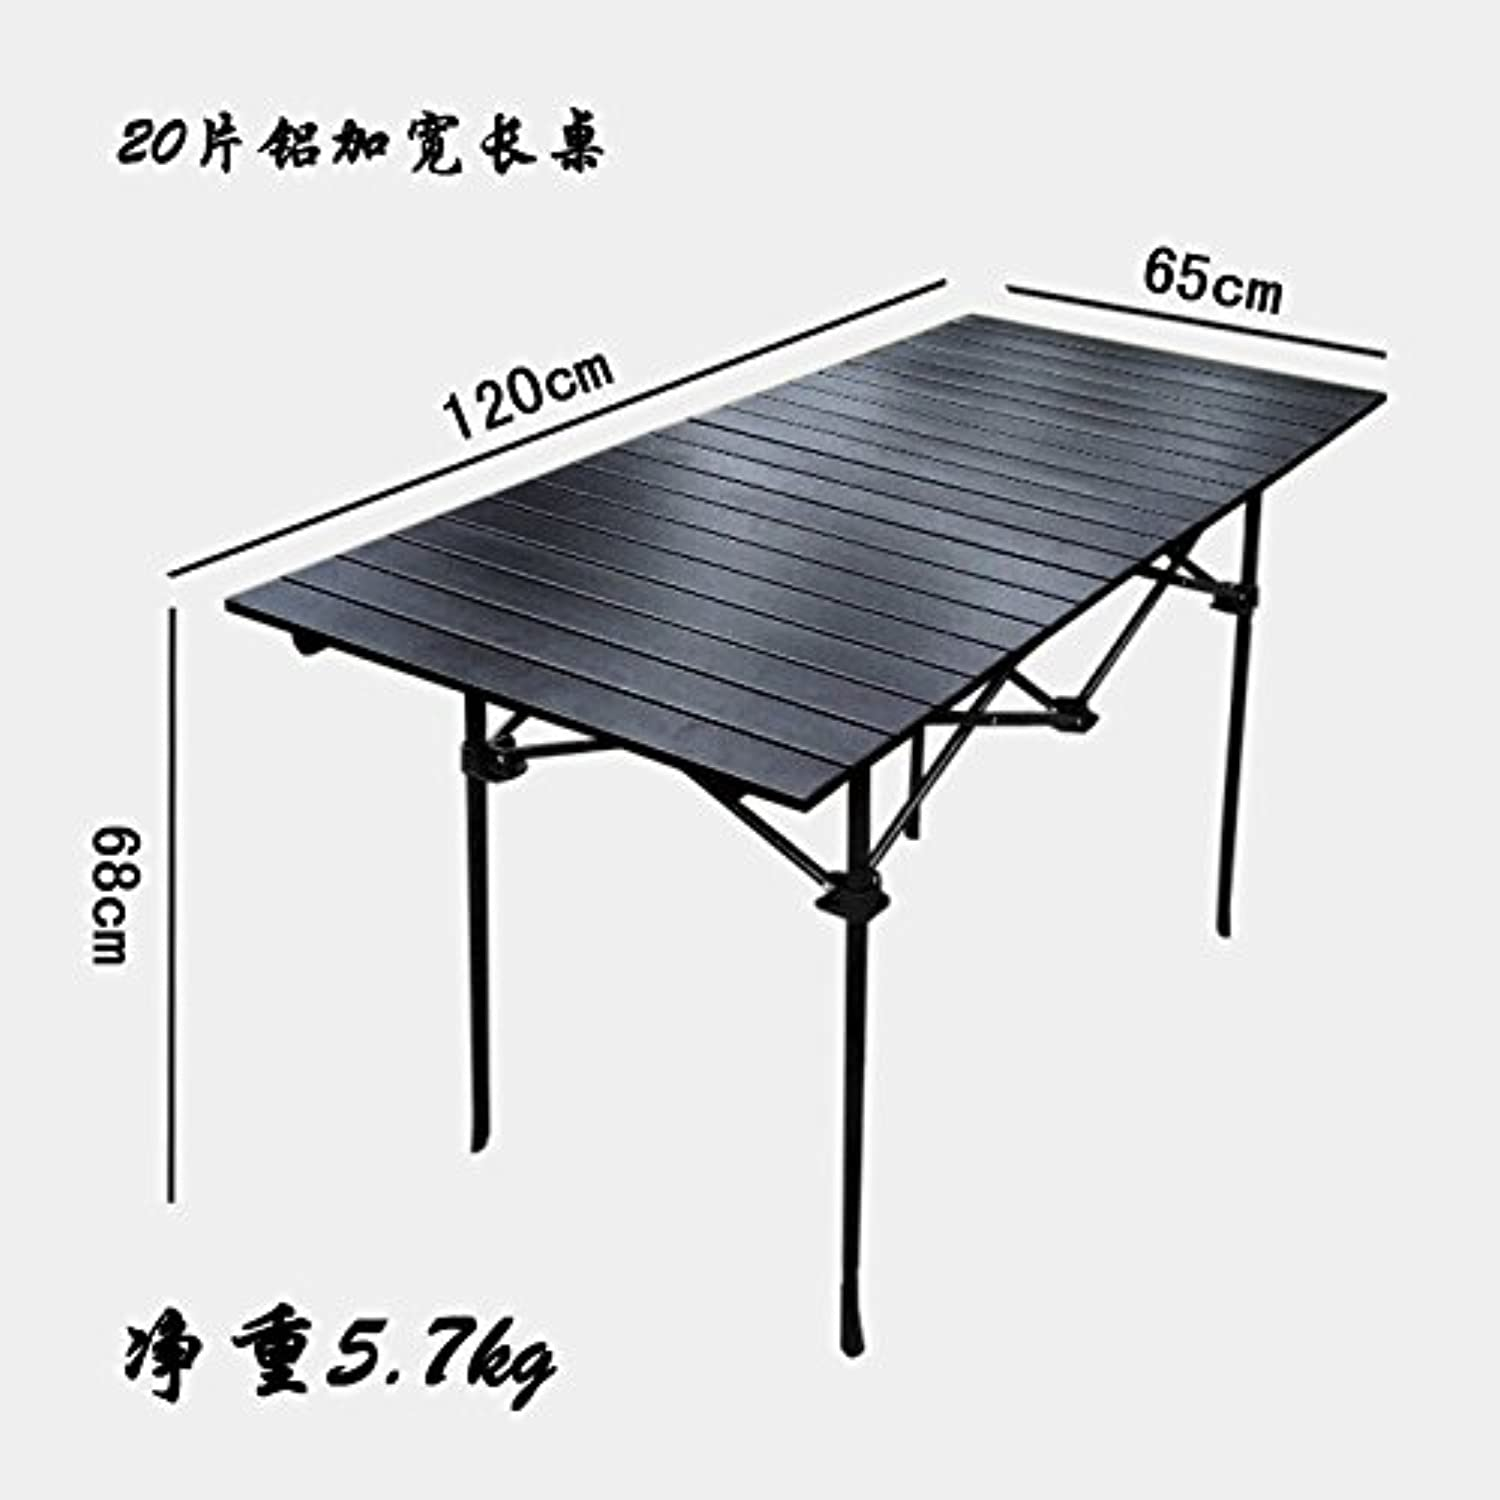 Xing Lin Outdoor Table Outdoor Folding Table Portable Aluminum Alloy Display Stall Table Ultra Light Mahjong Table Beach Barbecue Picnic Table And Chairs, 20 Widened 1206568Cm